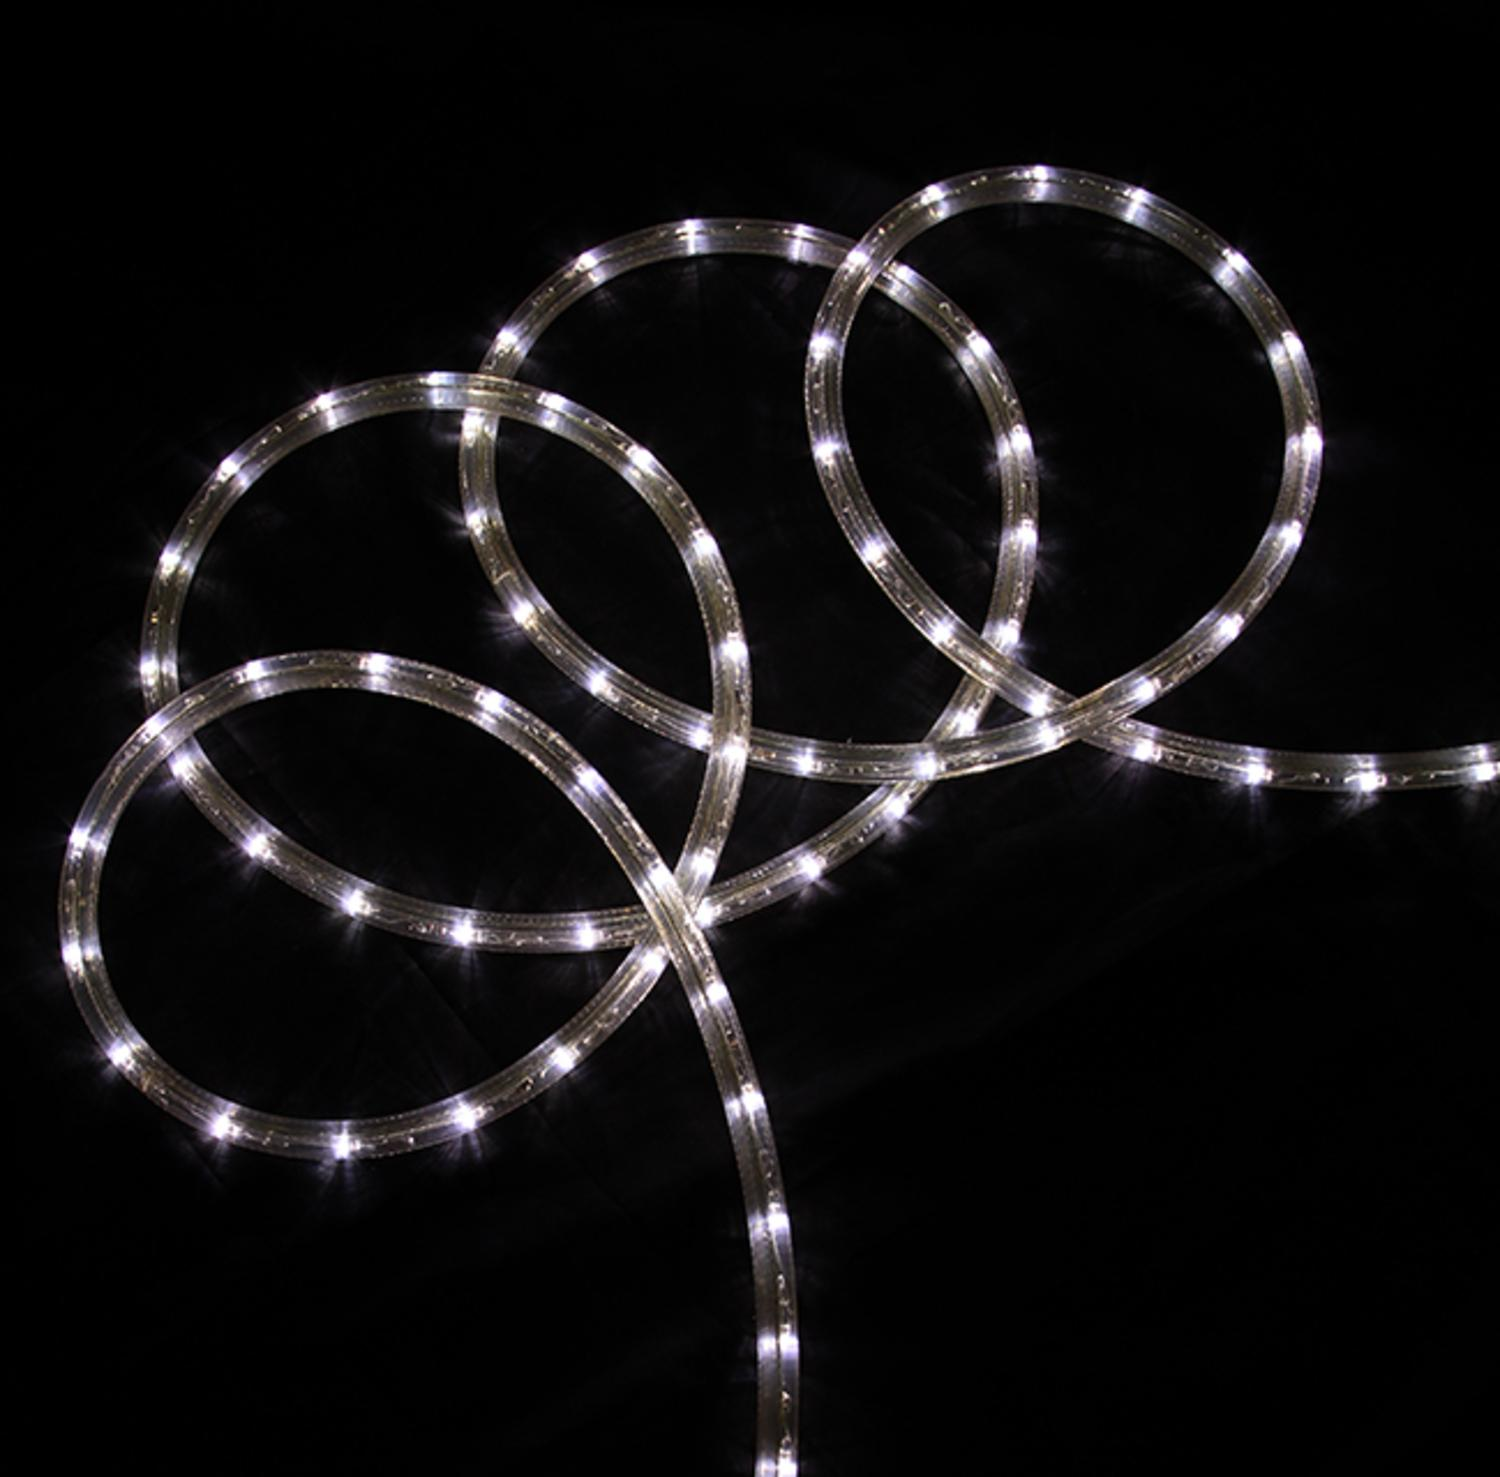 288' Commericial Grade Pure White LED Indoor/Outdoor Christmas Rope Lights on a Spool